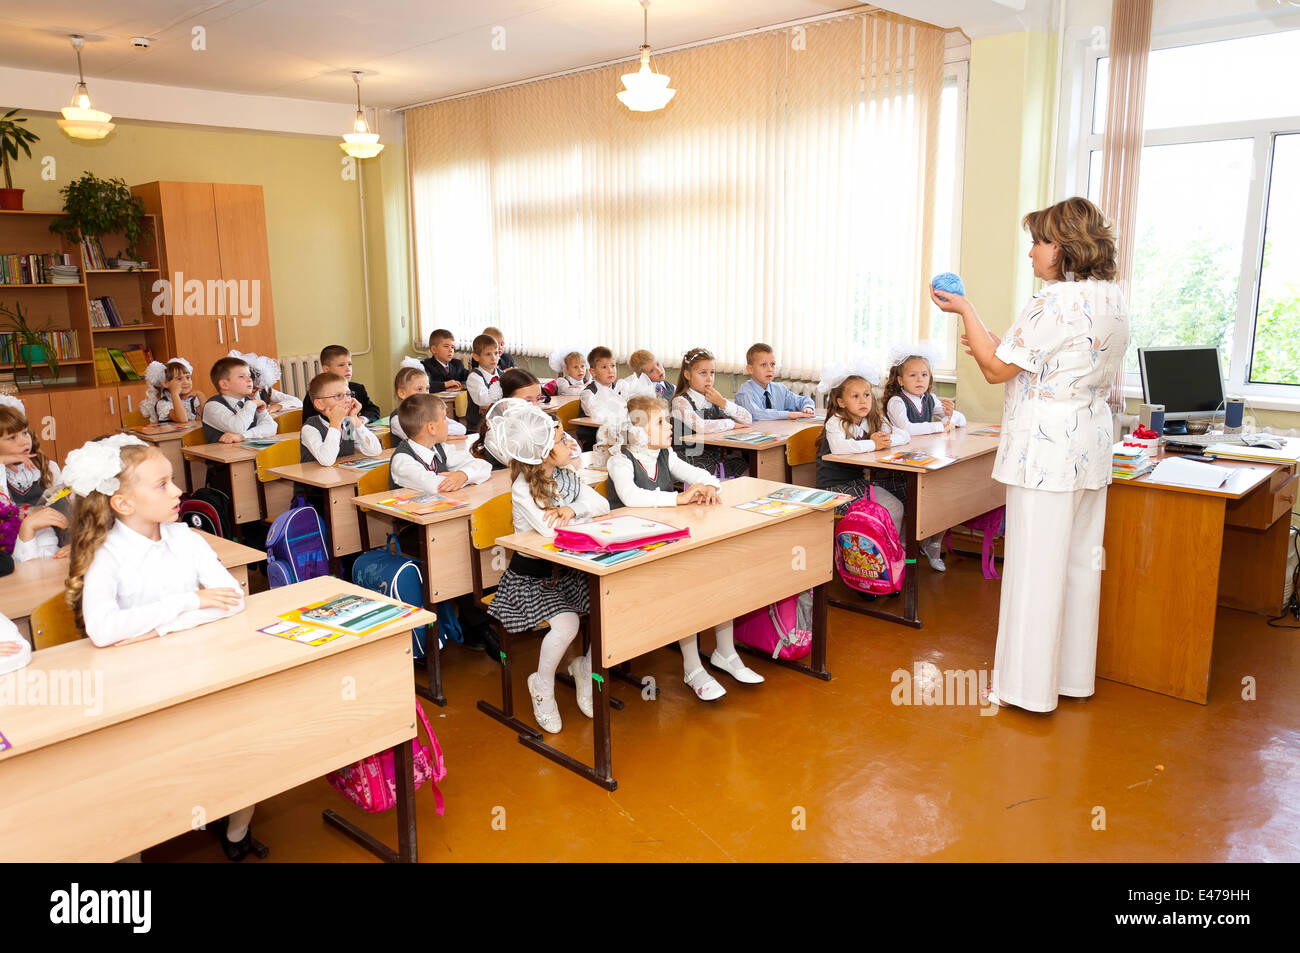 Elementary Classroom Students ~ Elementary school students at classroom desks and their